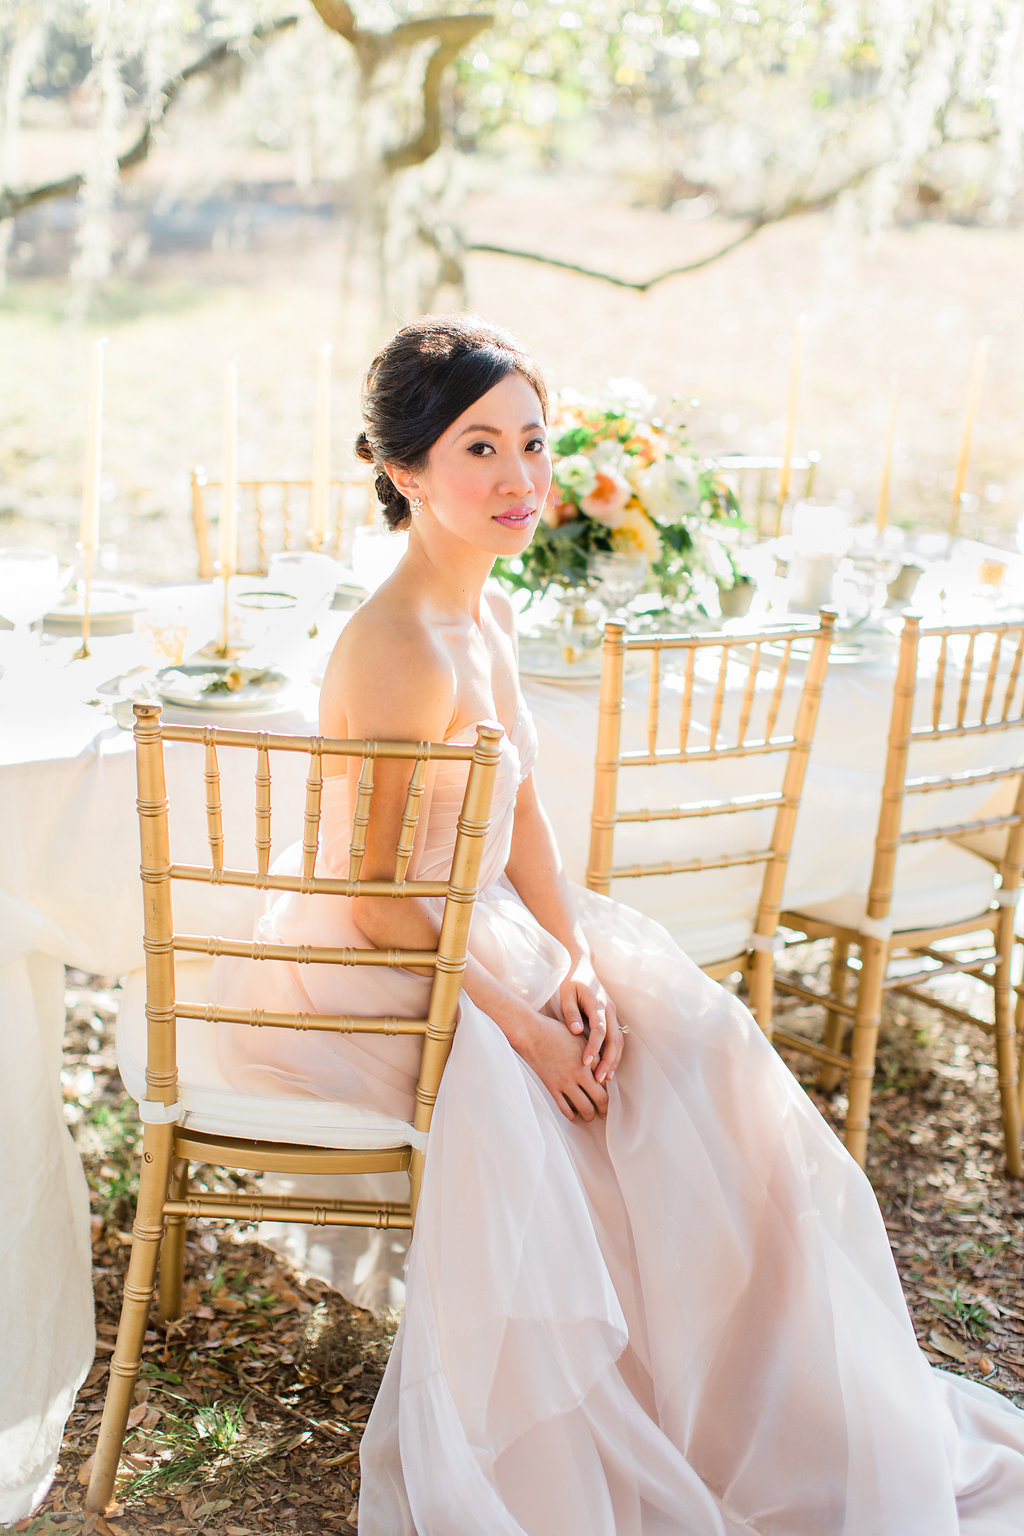 the-happy-bloom-design-studio-south-wormsloe-plantation-wedding-sarah-seven-blushing-ivory-and-beau-bridal-boutique-savannah-wedding-dresses-savannah-bridal-boutique-savannah-weddings-savannah-wedding-planner-savannah-event-planner-14.jpg